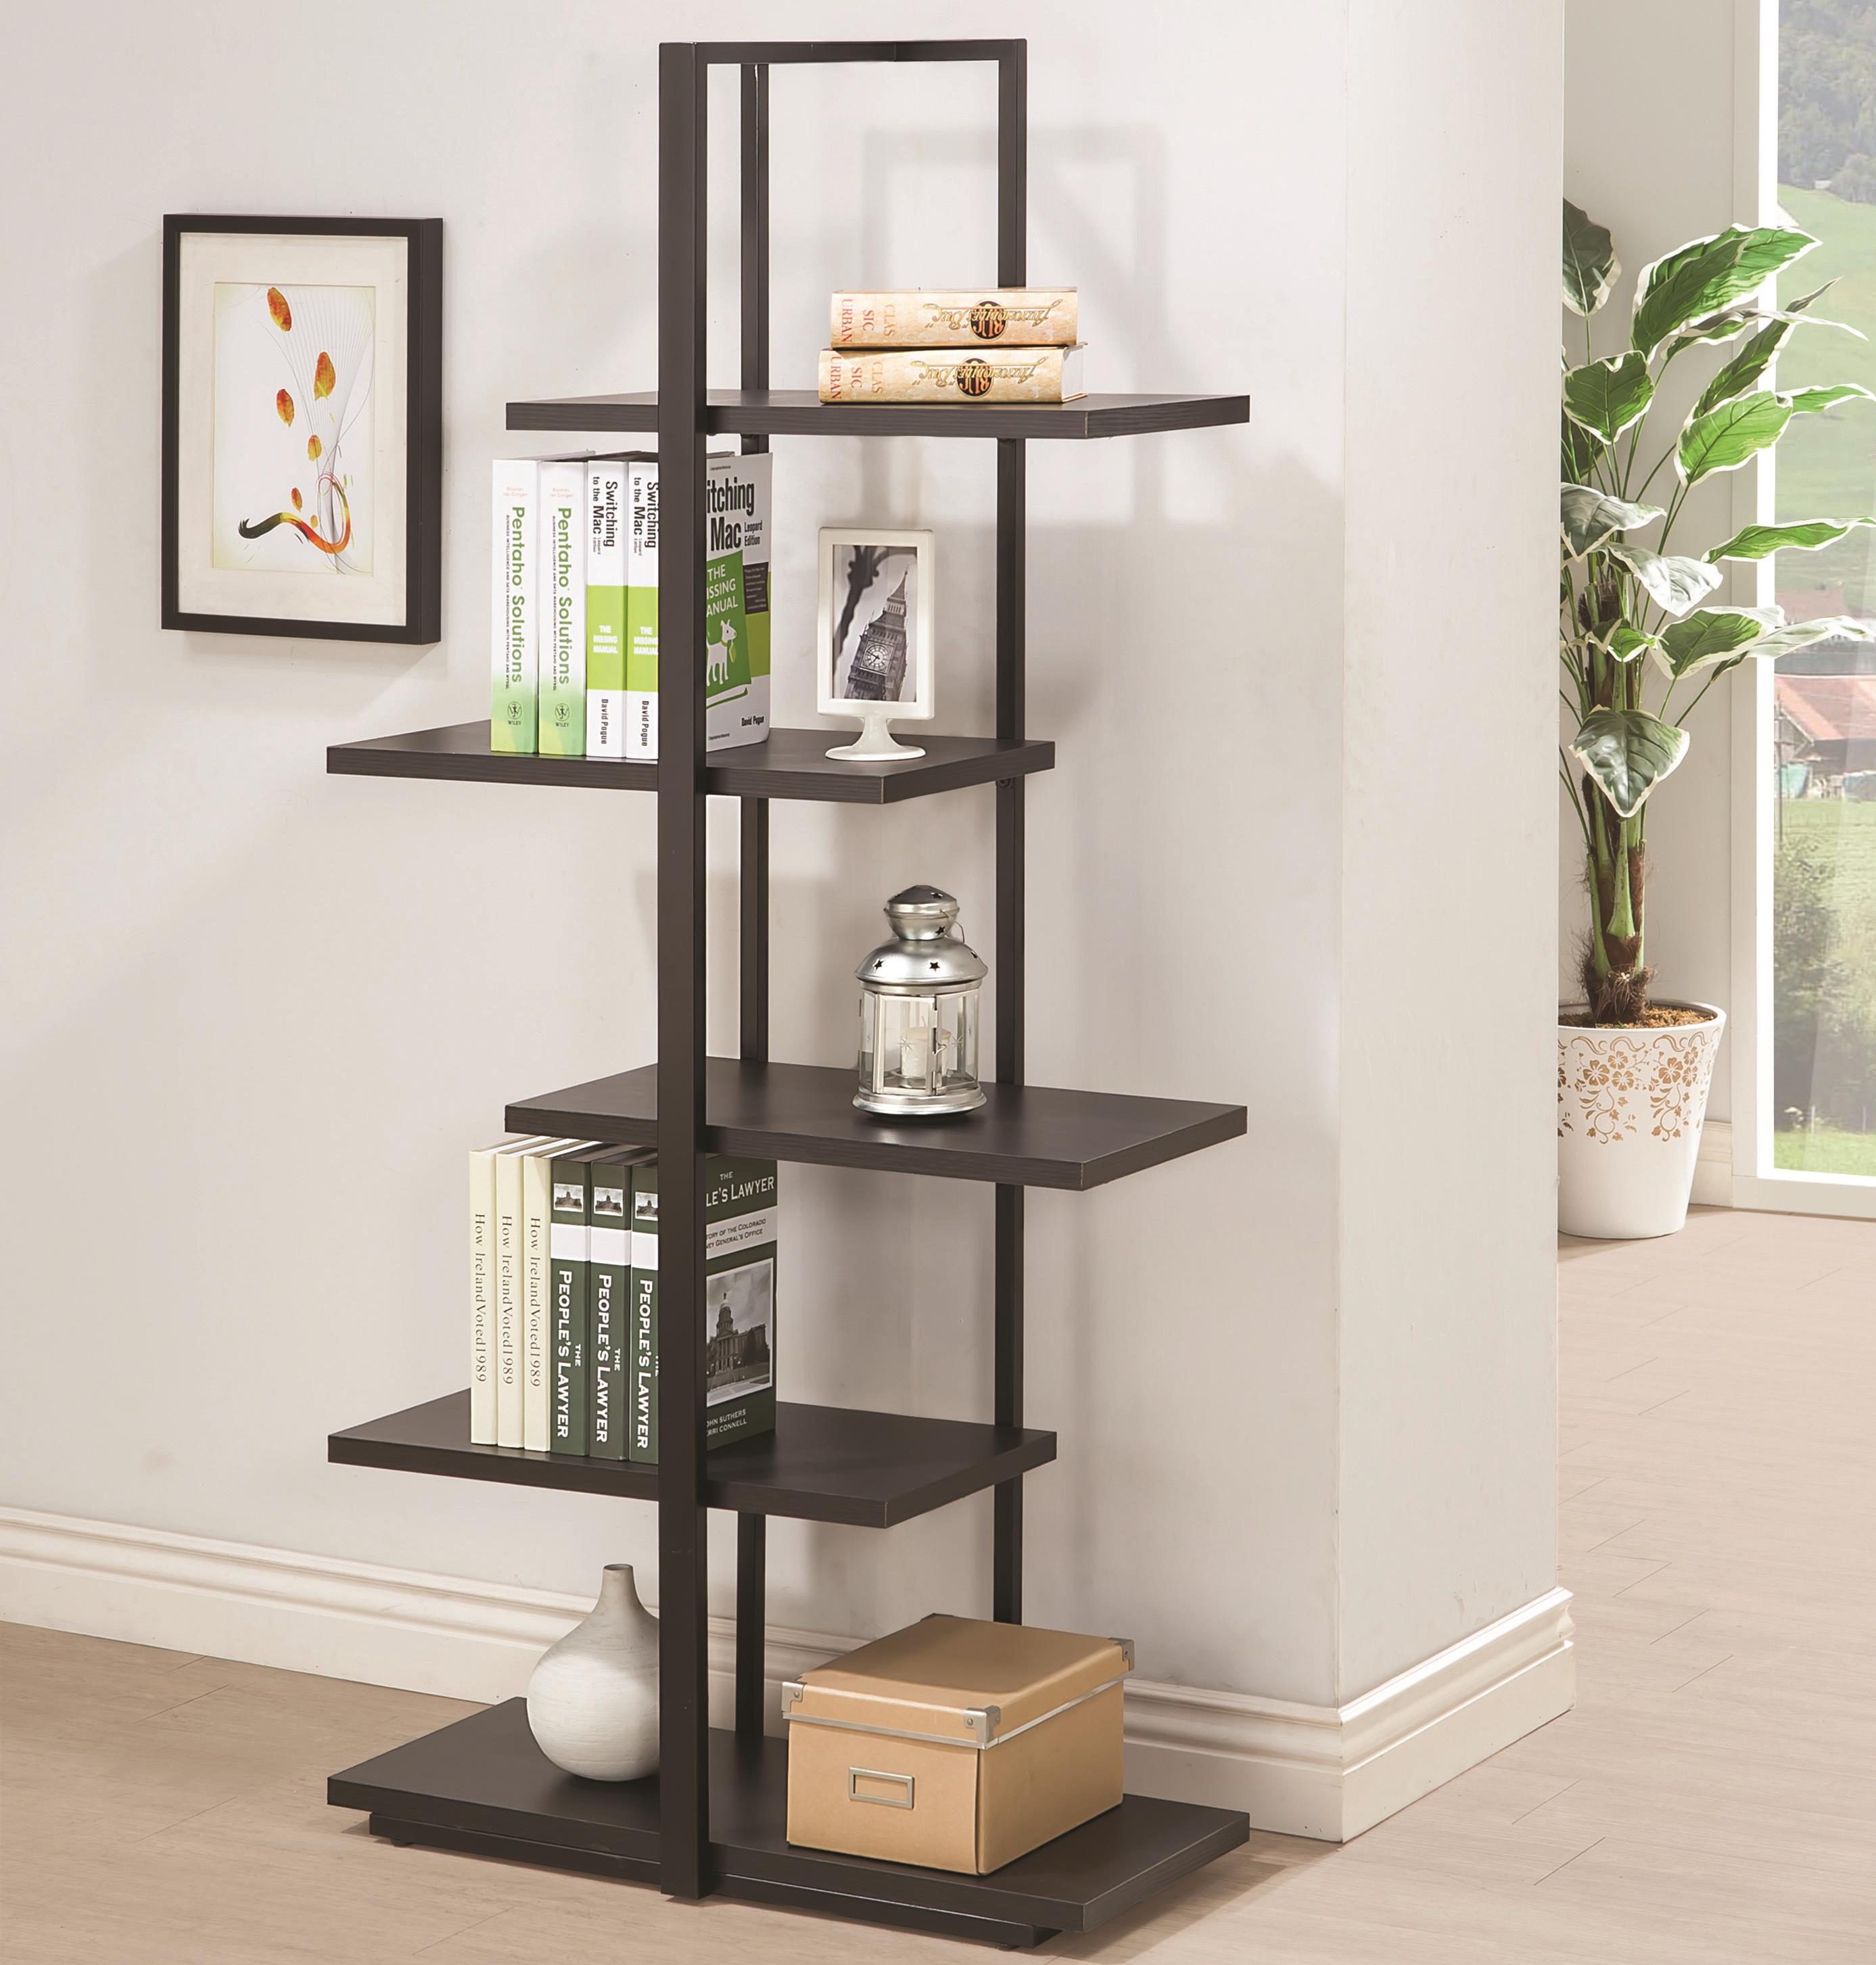 Coaster Bookcases Bookcase - Item Number: 801034